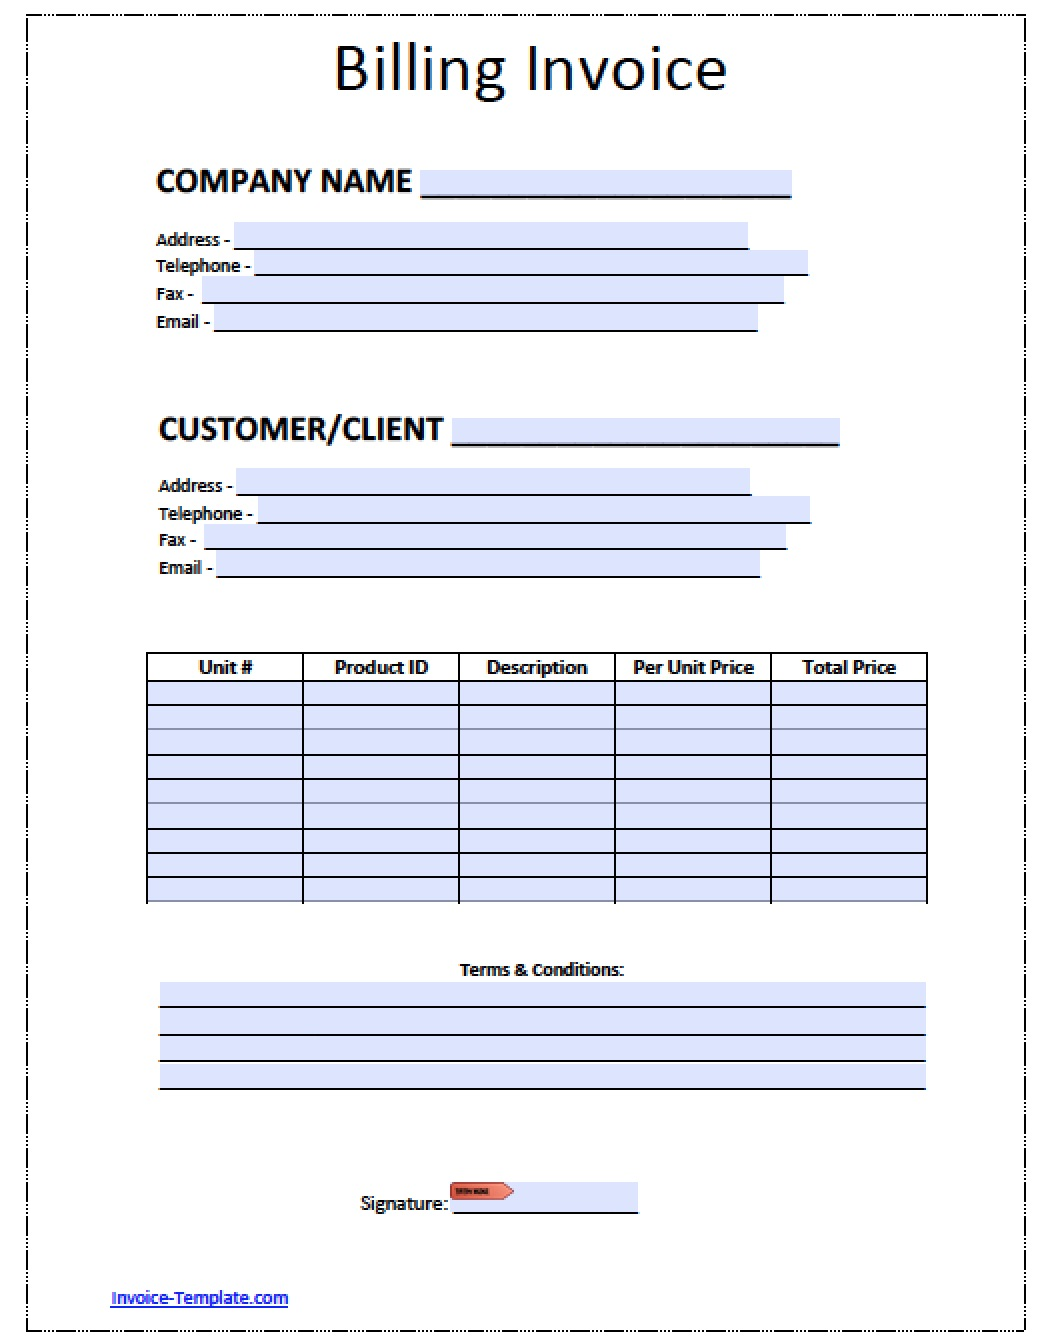 Free Billing Invoice Template Excel PDF Word Doc - Free software for invoices chanel online store